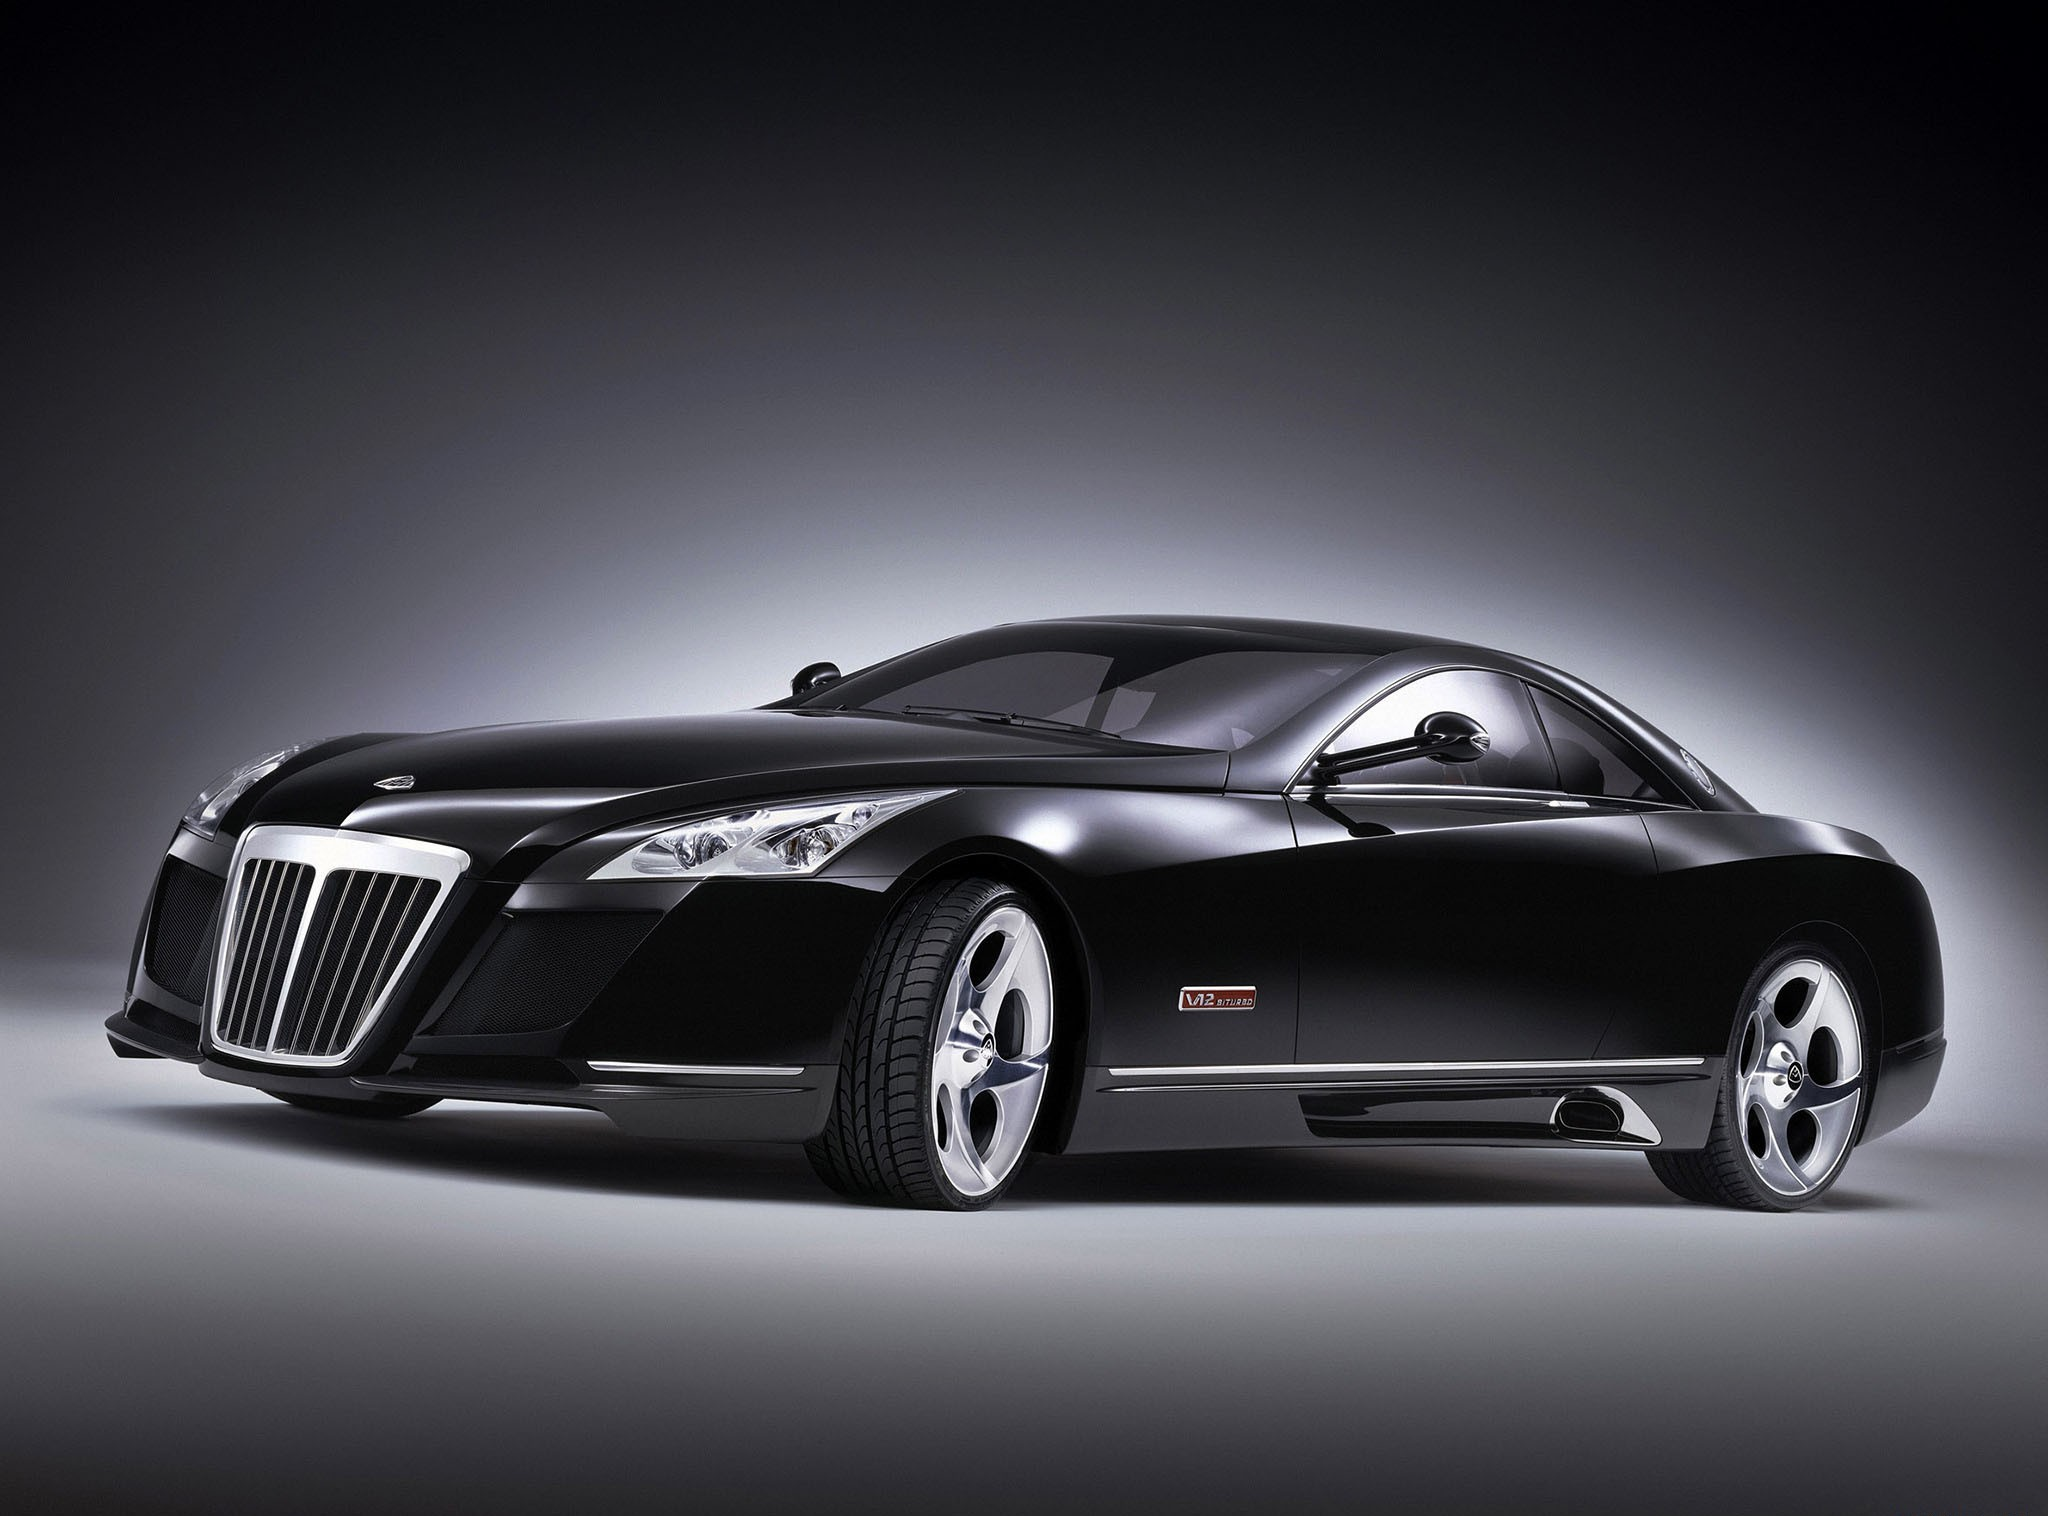 Maybach Exelero HD Wallpaper Background Image 2048x1516 ID 2048x1516